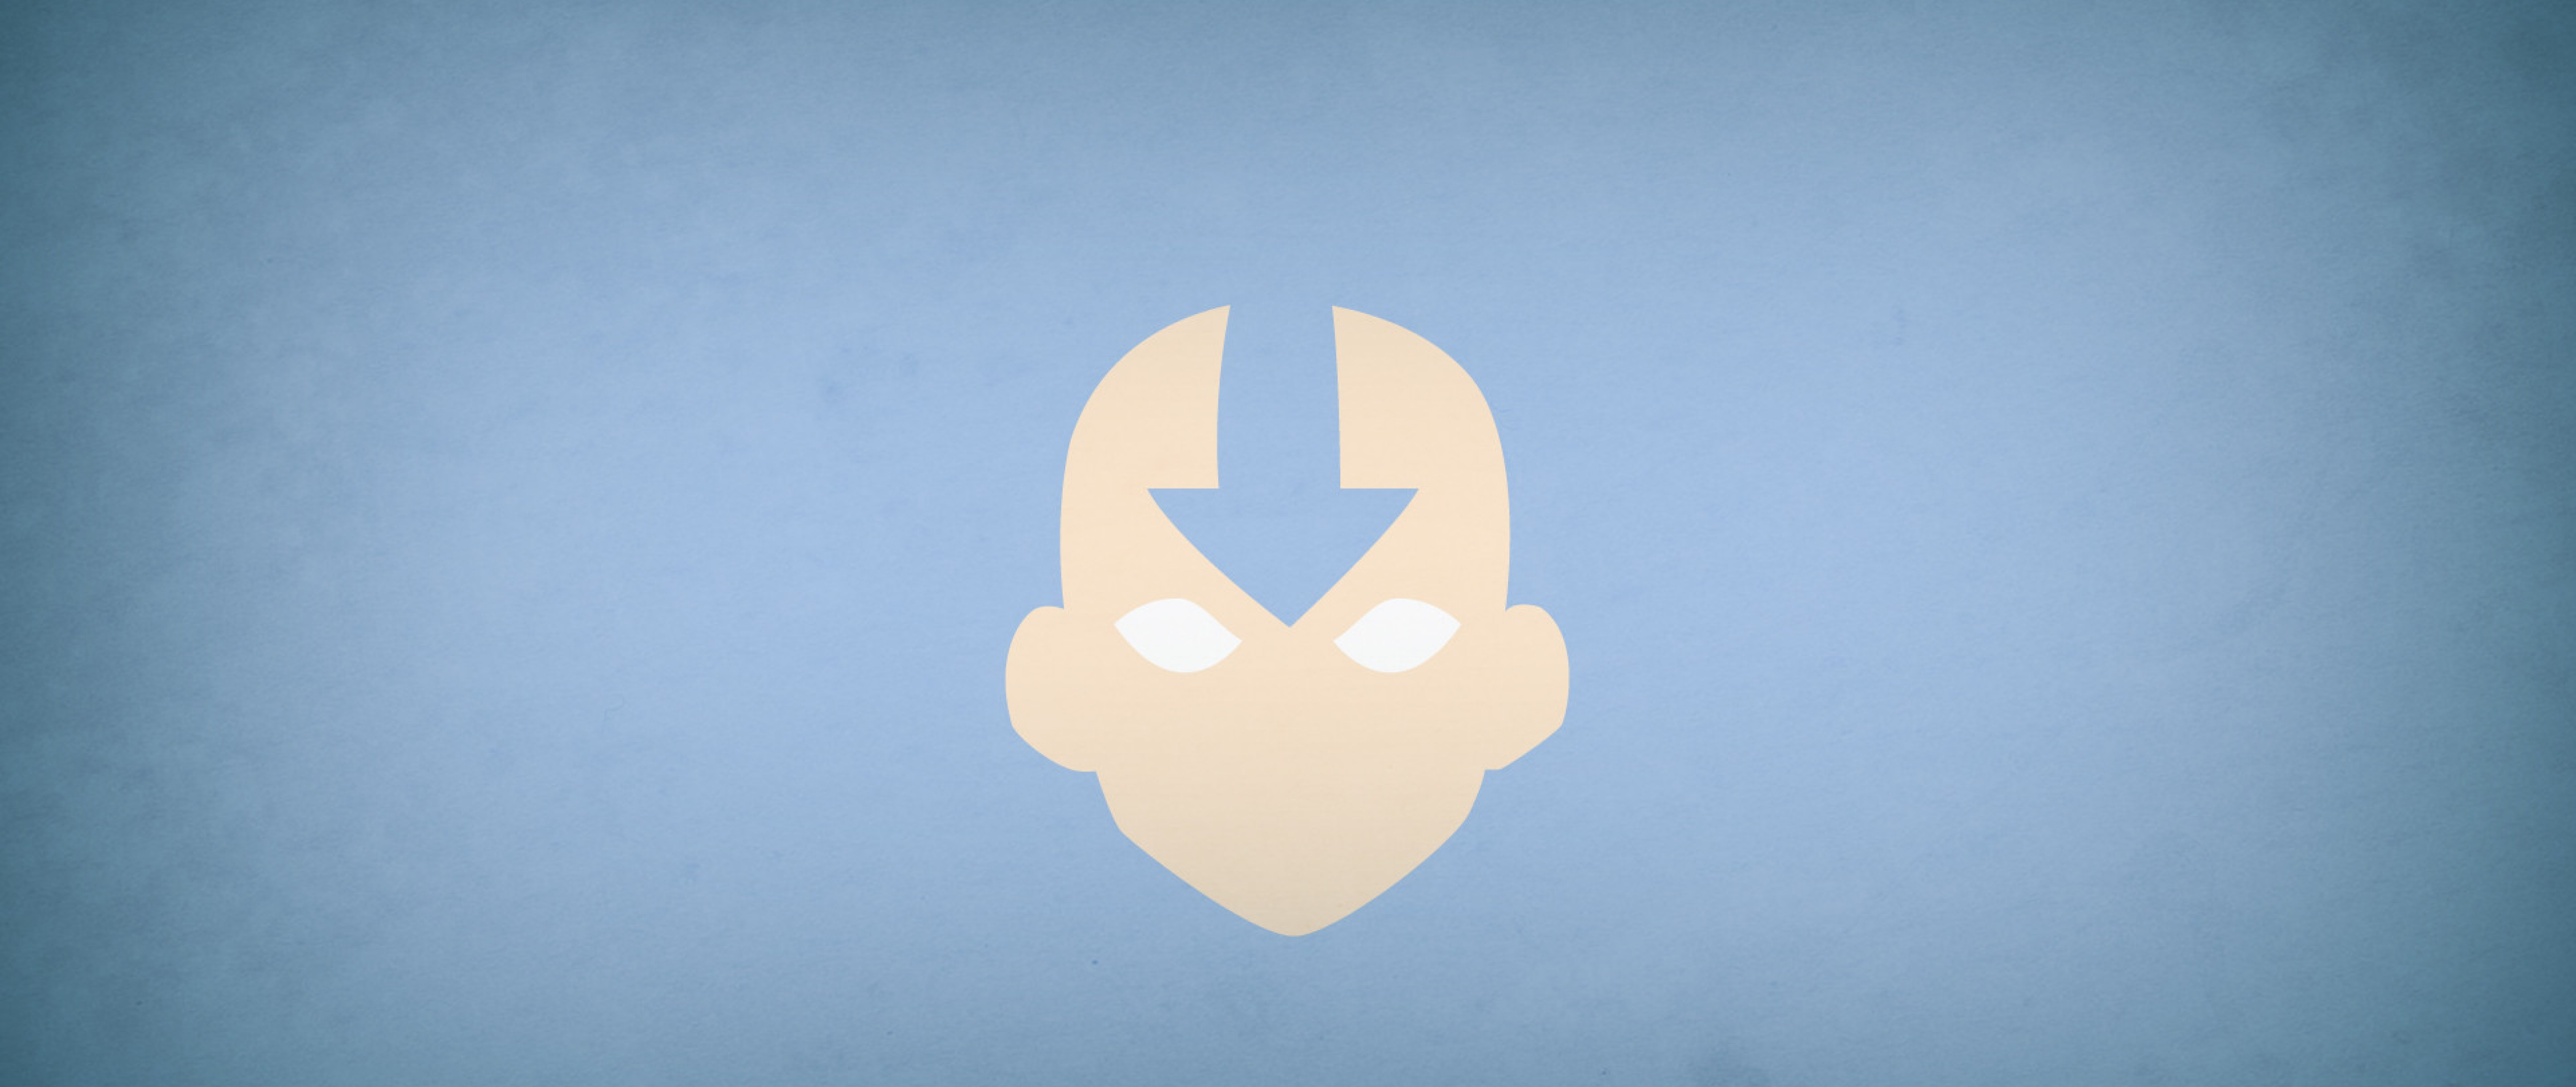 Last Airbender Arrow HD Wallpaper